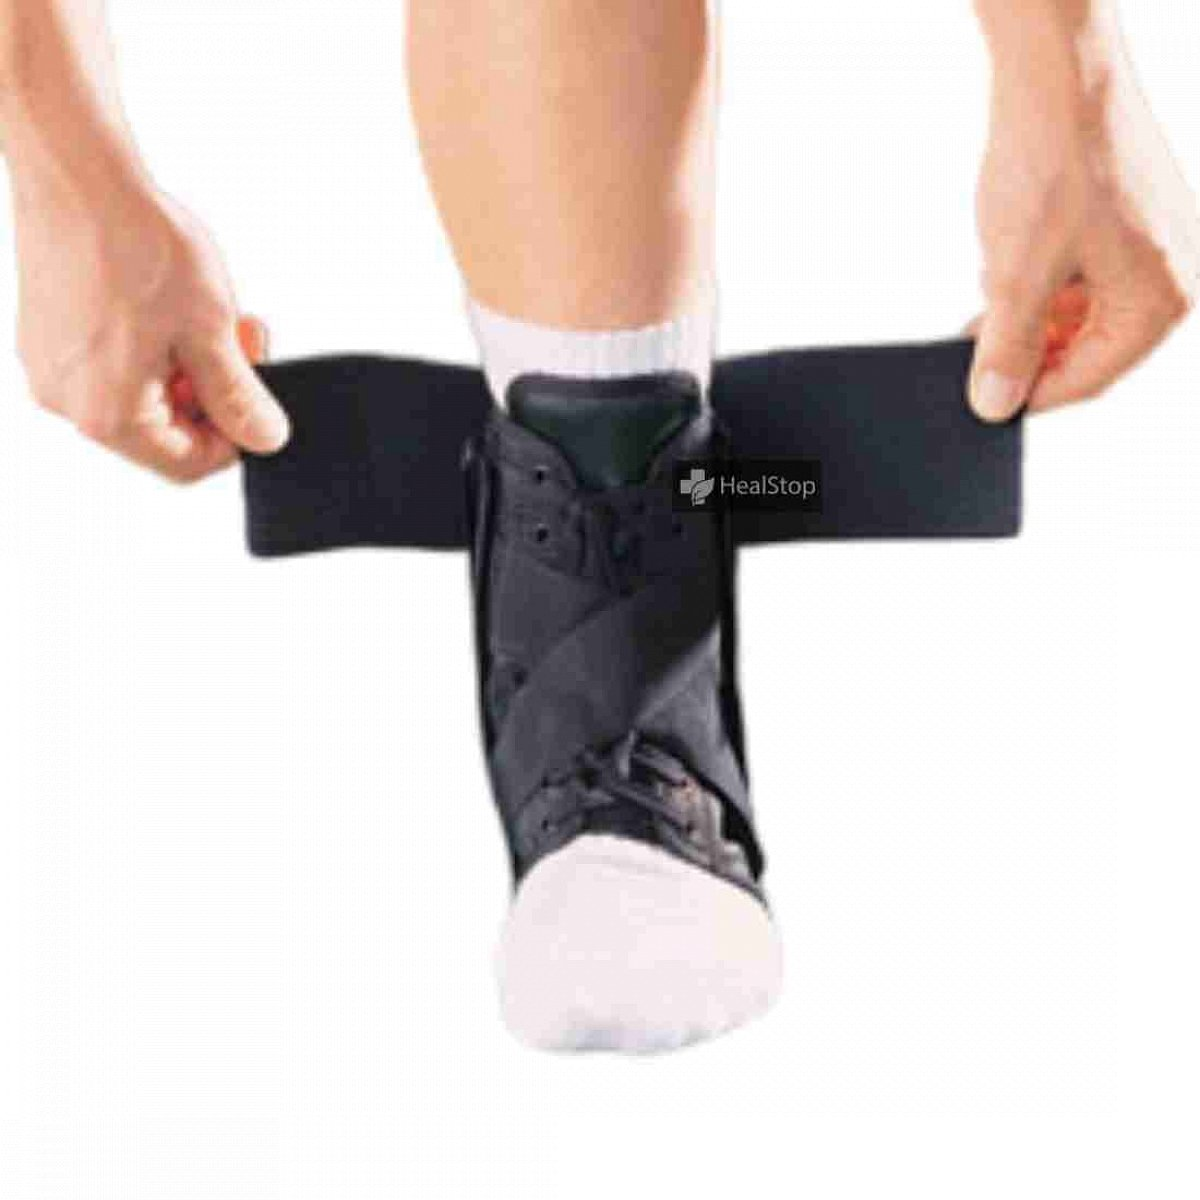 Ankle Support With Strap - Small - 4106